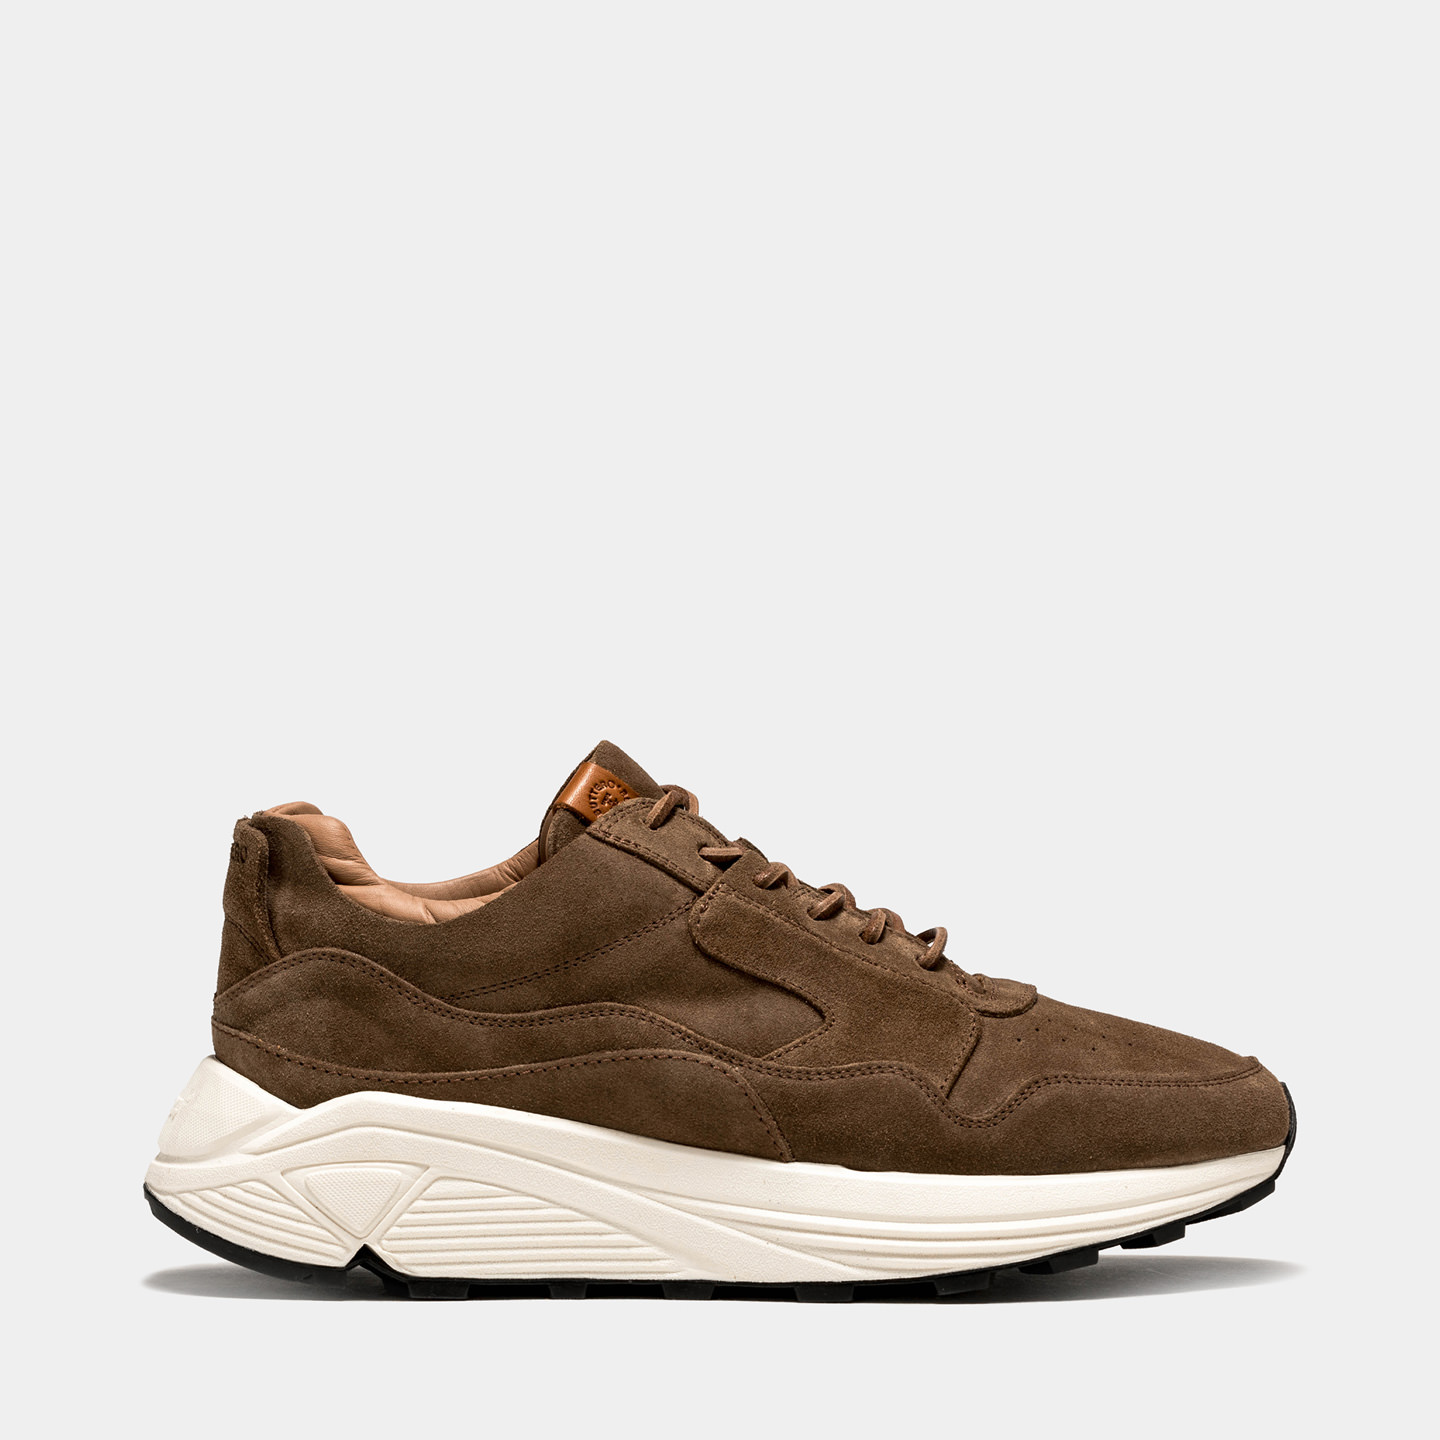 BUTTERO: VINCI SNEAKERS IN TABACCO BROWN SUEDE